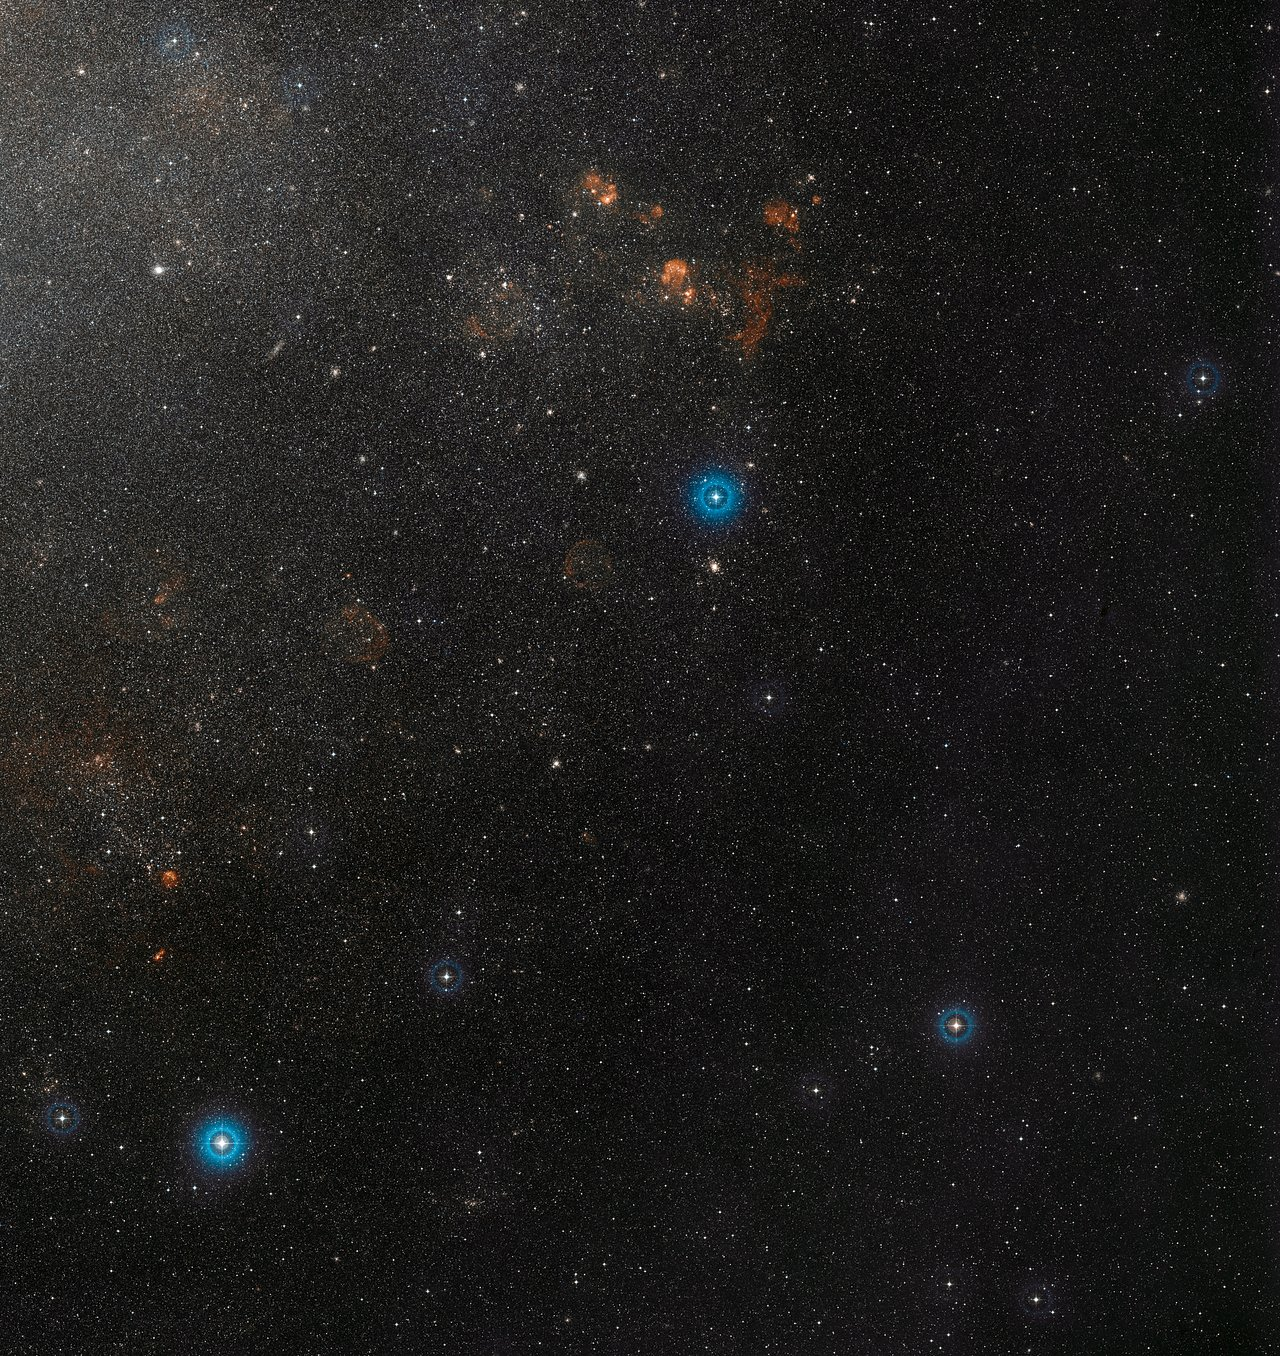 Wide-field view of part of the Large Magellanic Cloud and the remarkable double star OGLE-LMC-CEP0227